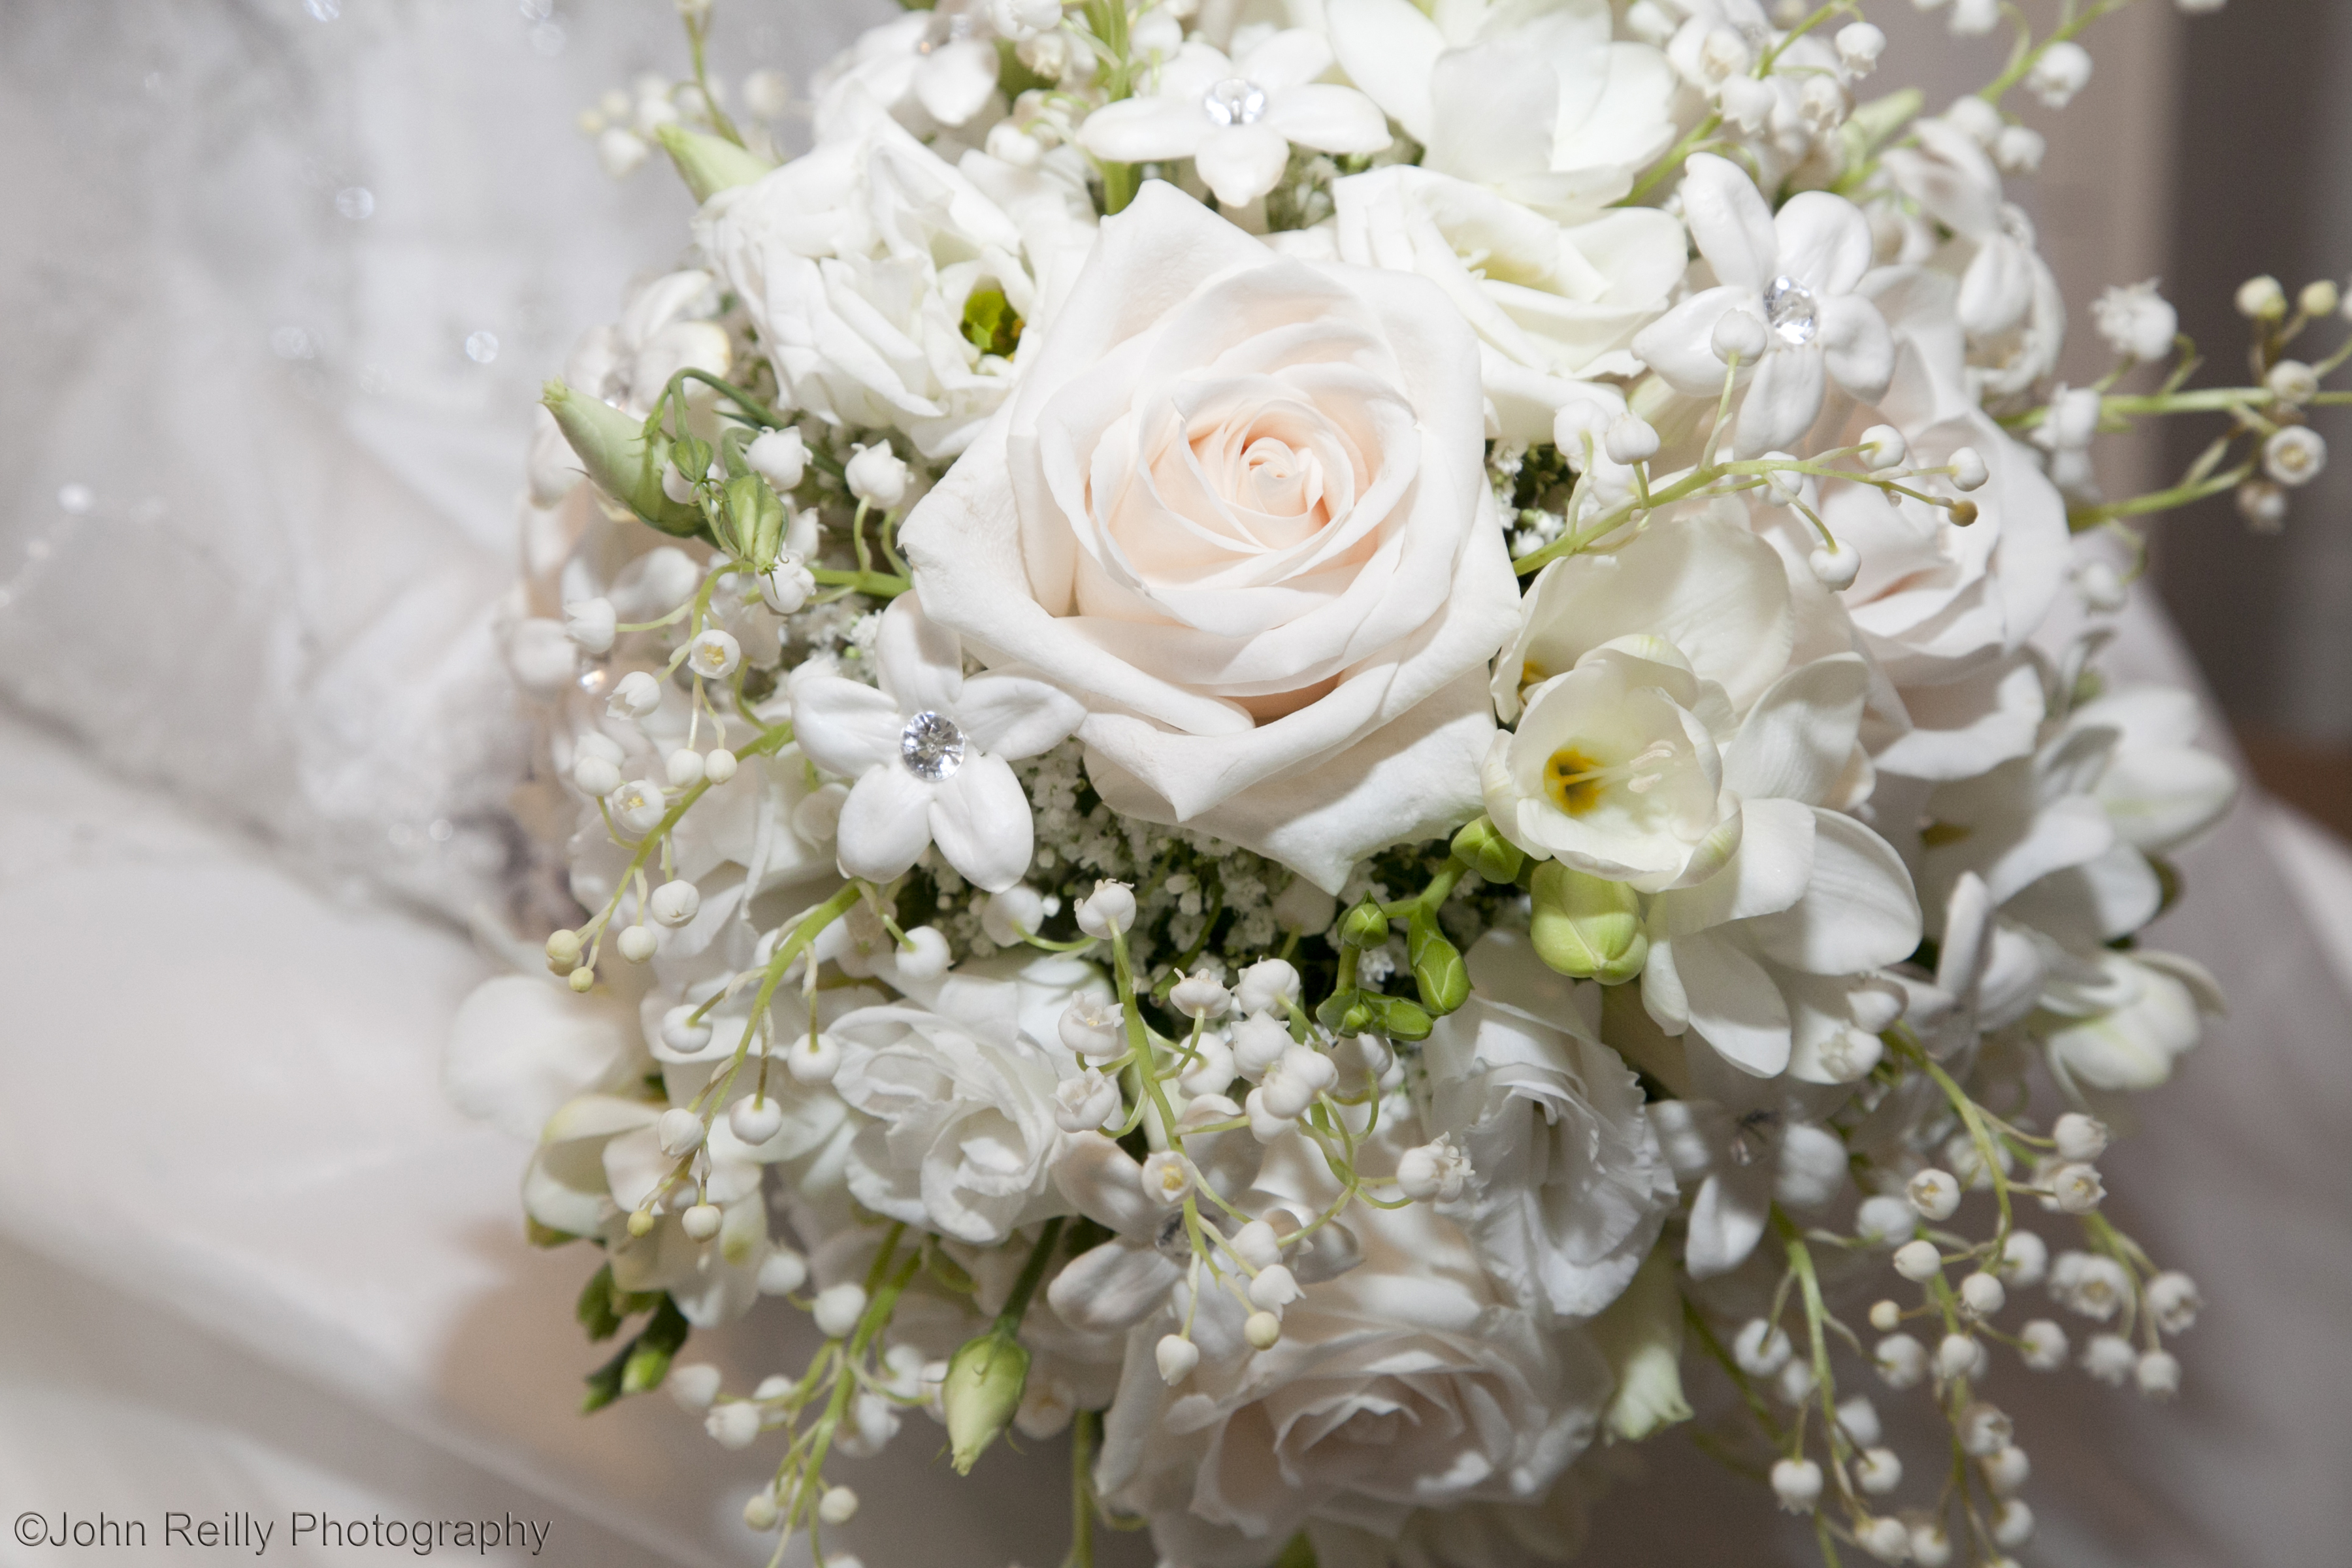 lily of the valley, roses, freesia, stephanotis ball